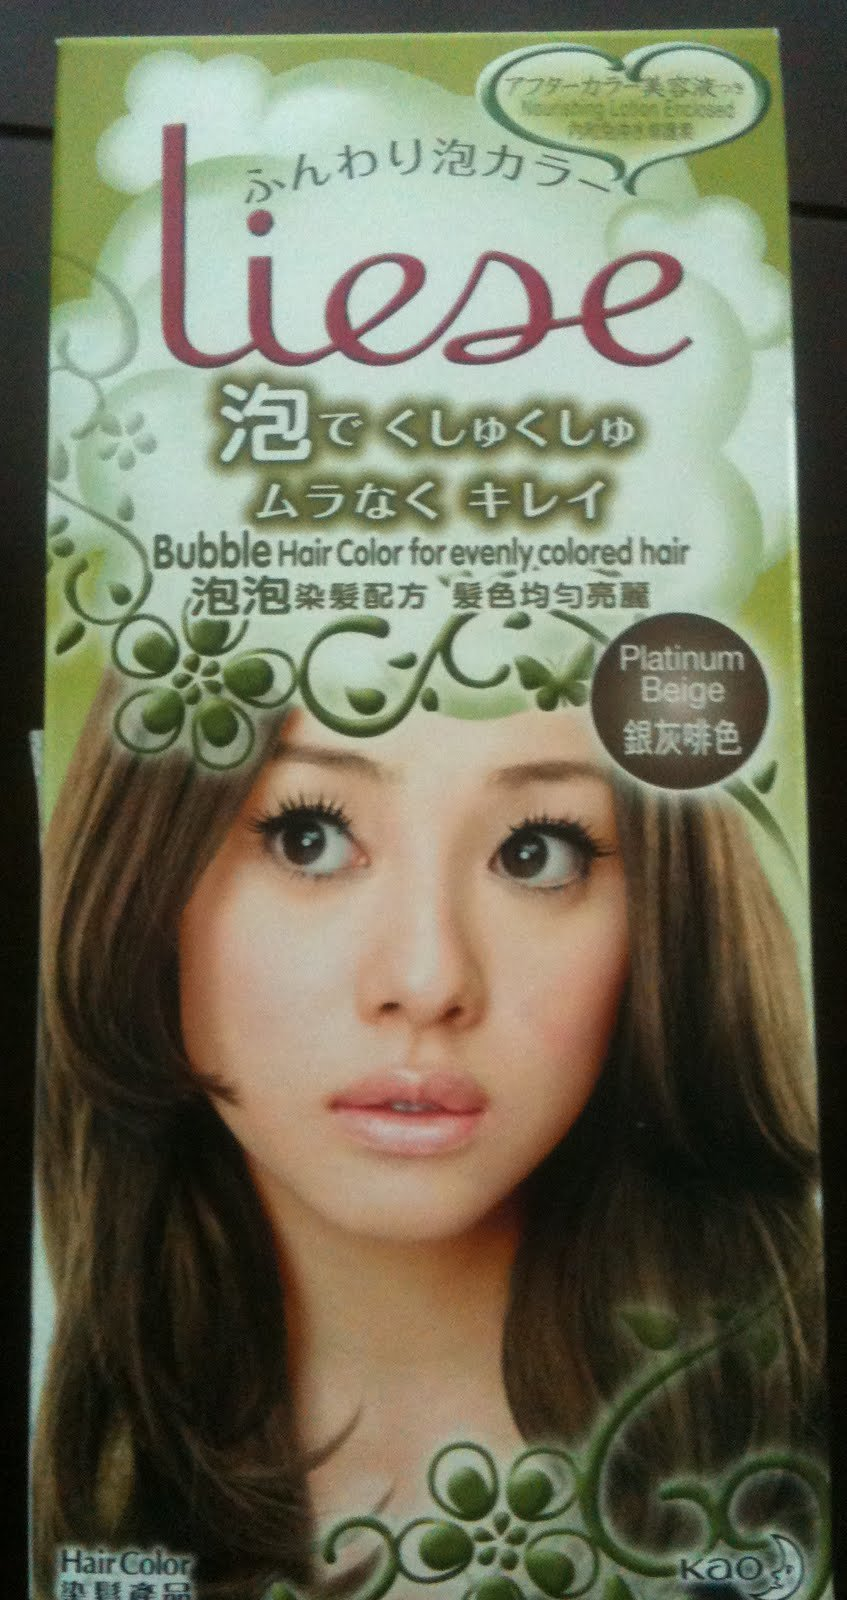 The Best The Clover Beauty Inn Review Liese Bubble Hair Color Pictures